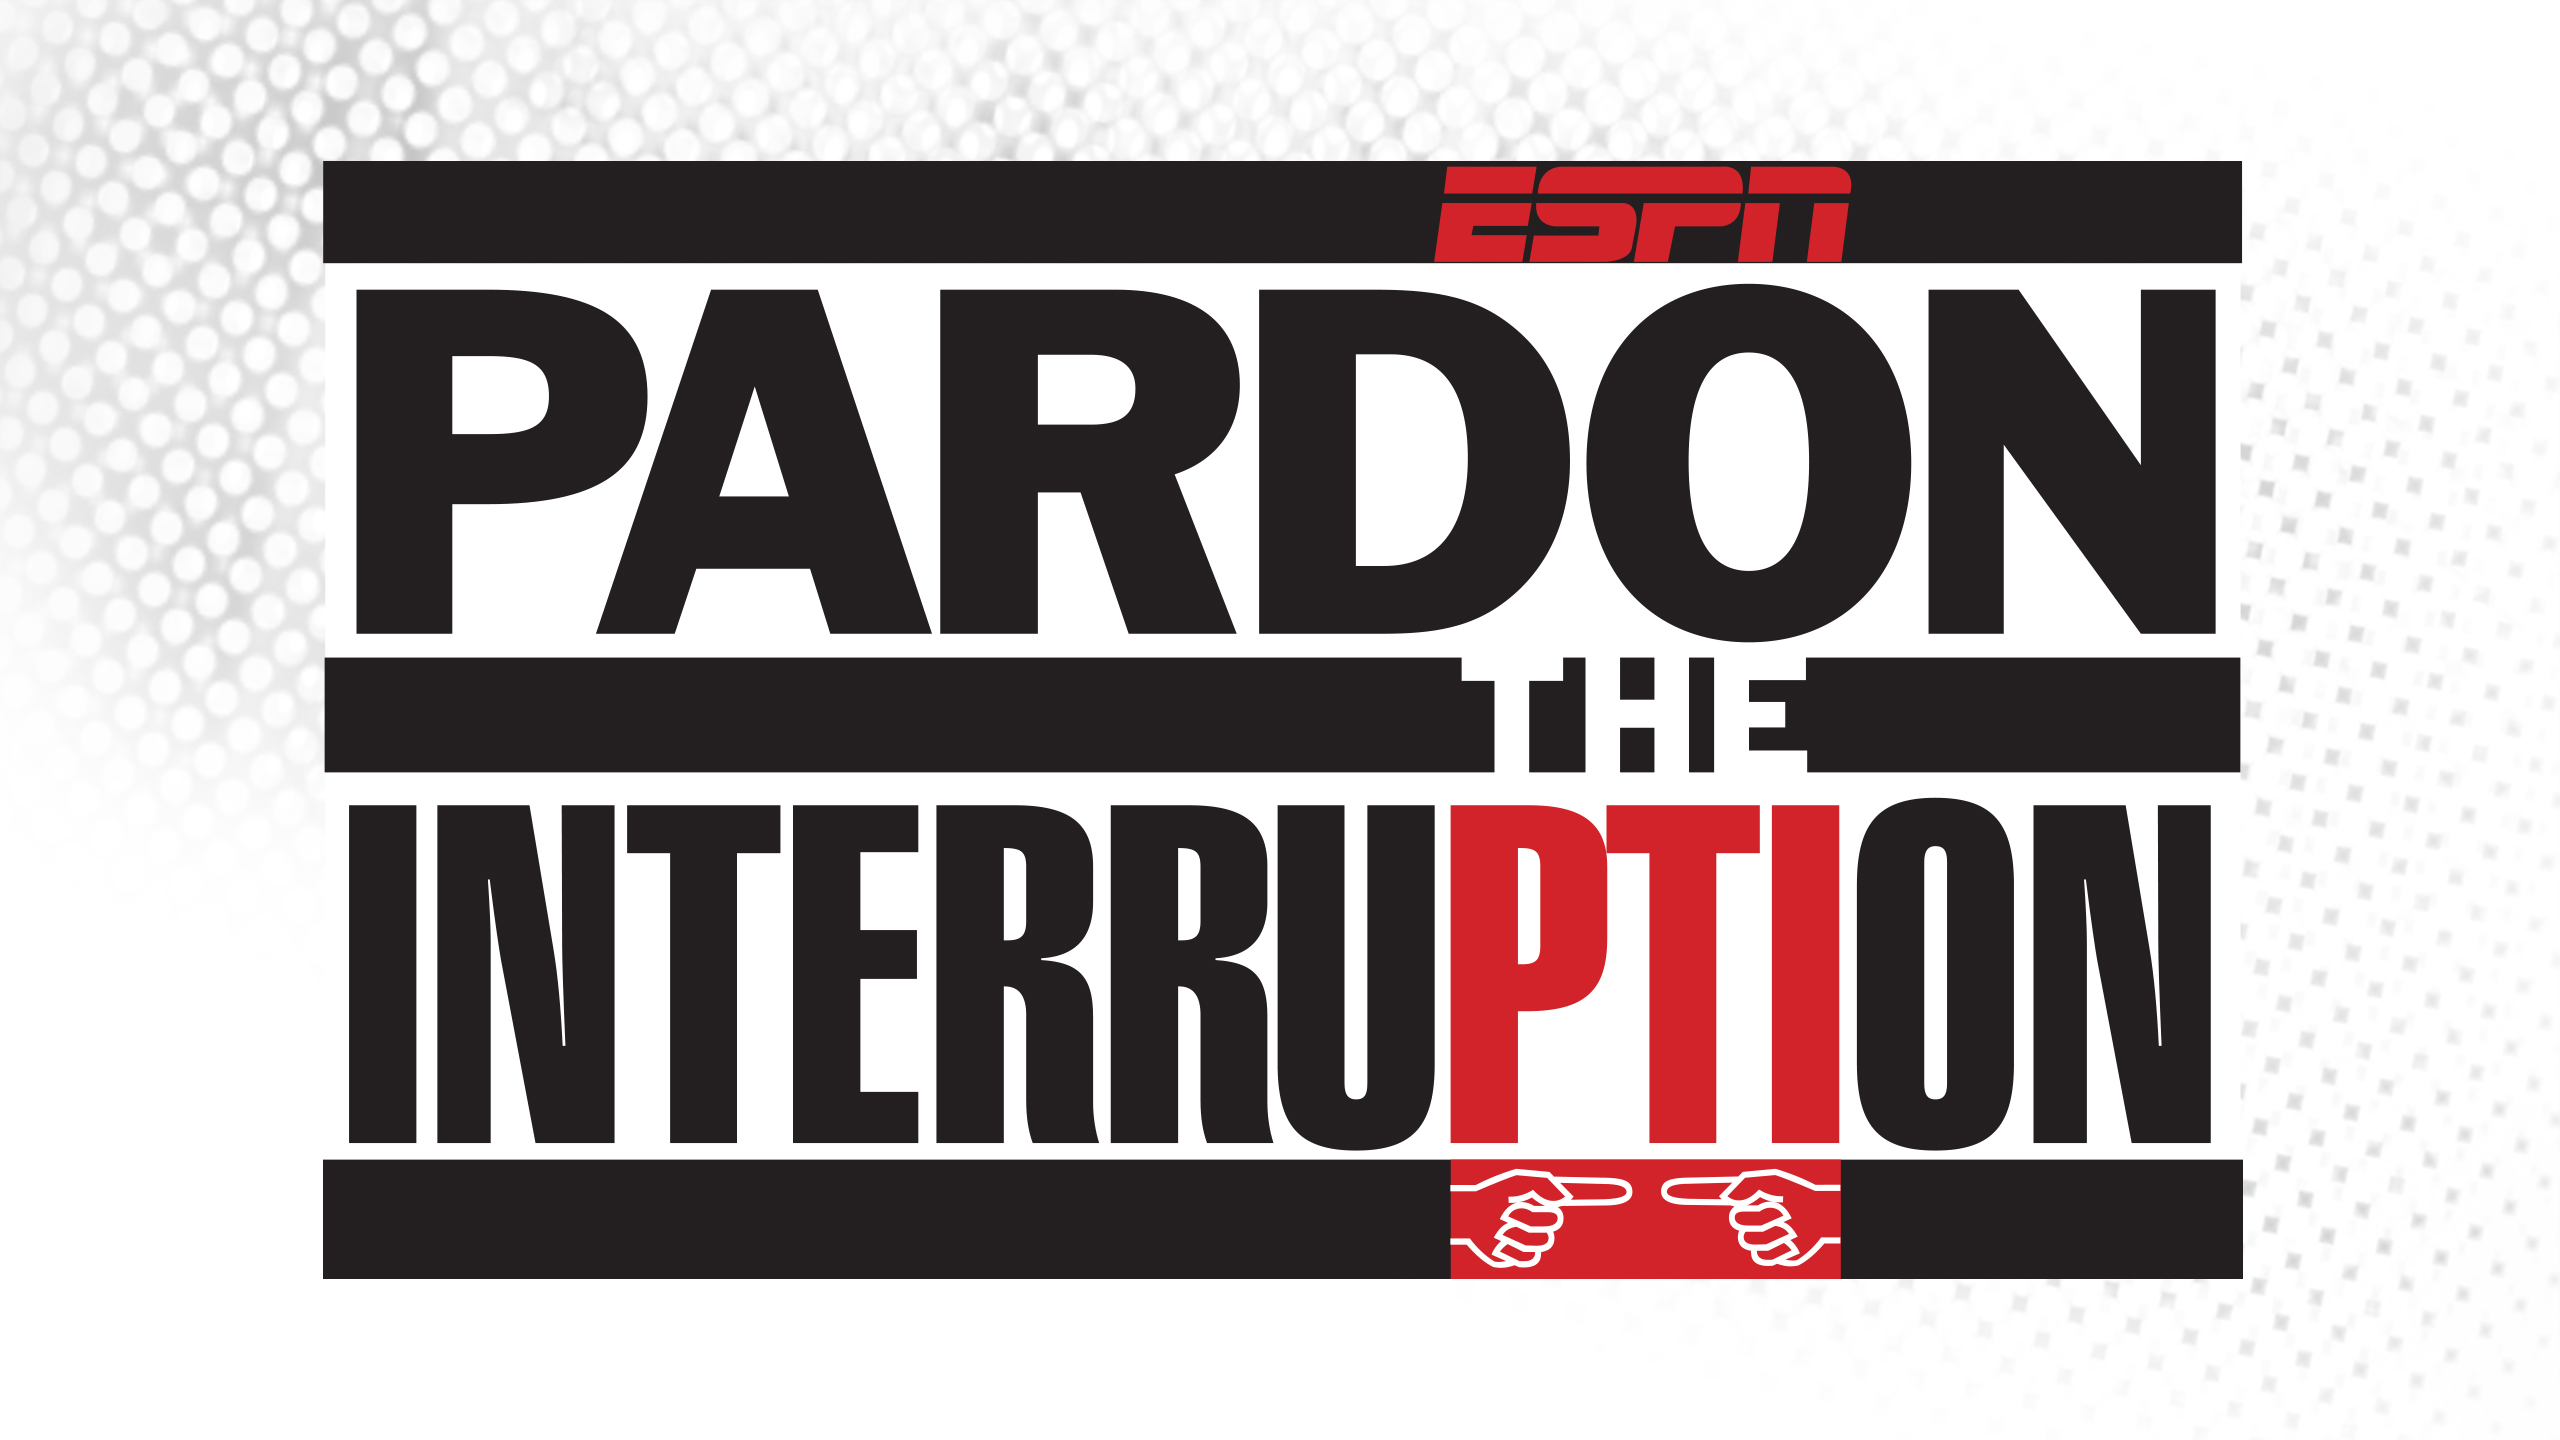 Thu, 2/14 - Pardon The Interruption